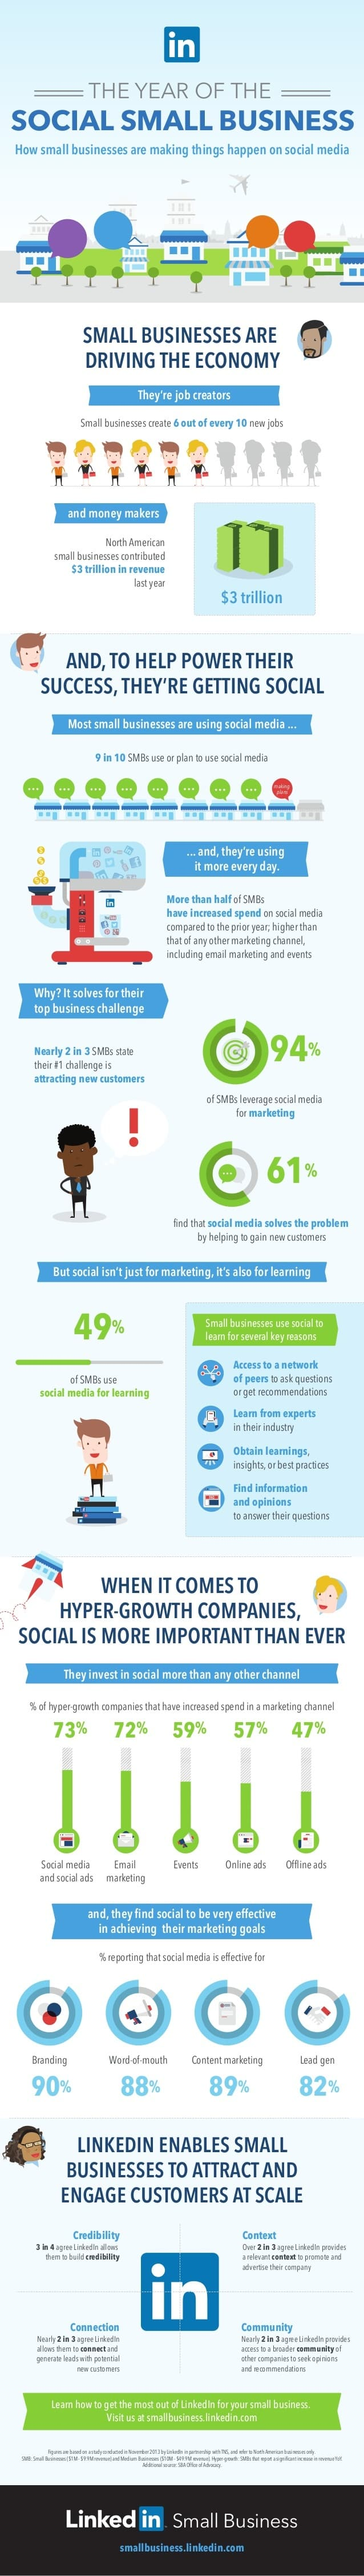 94 percent of US small businesses use social media for marketing